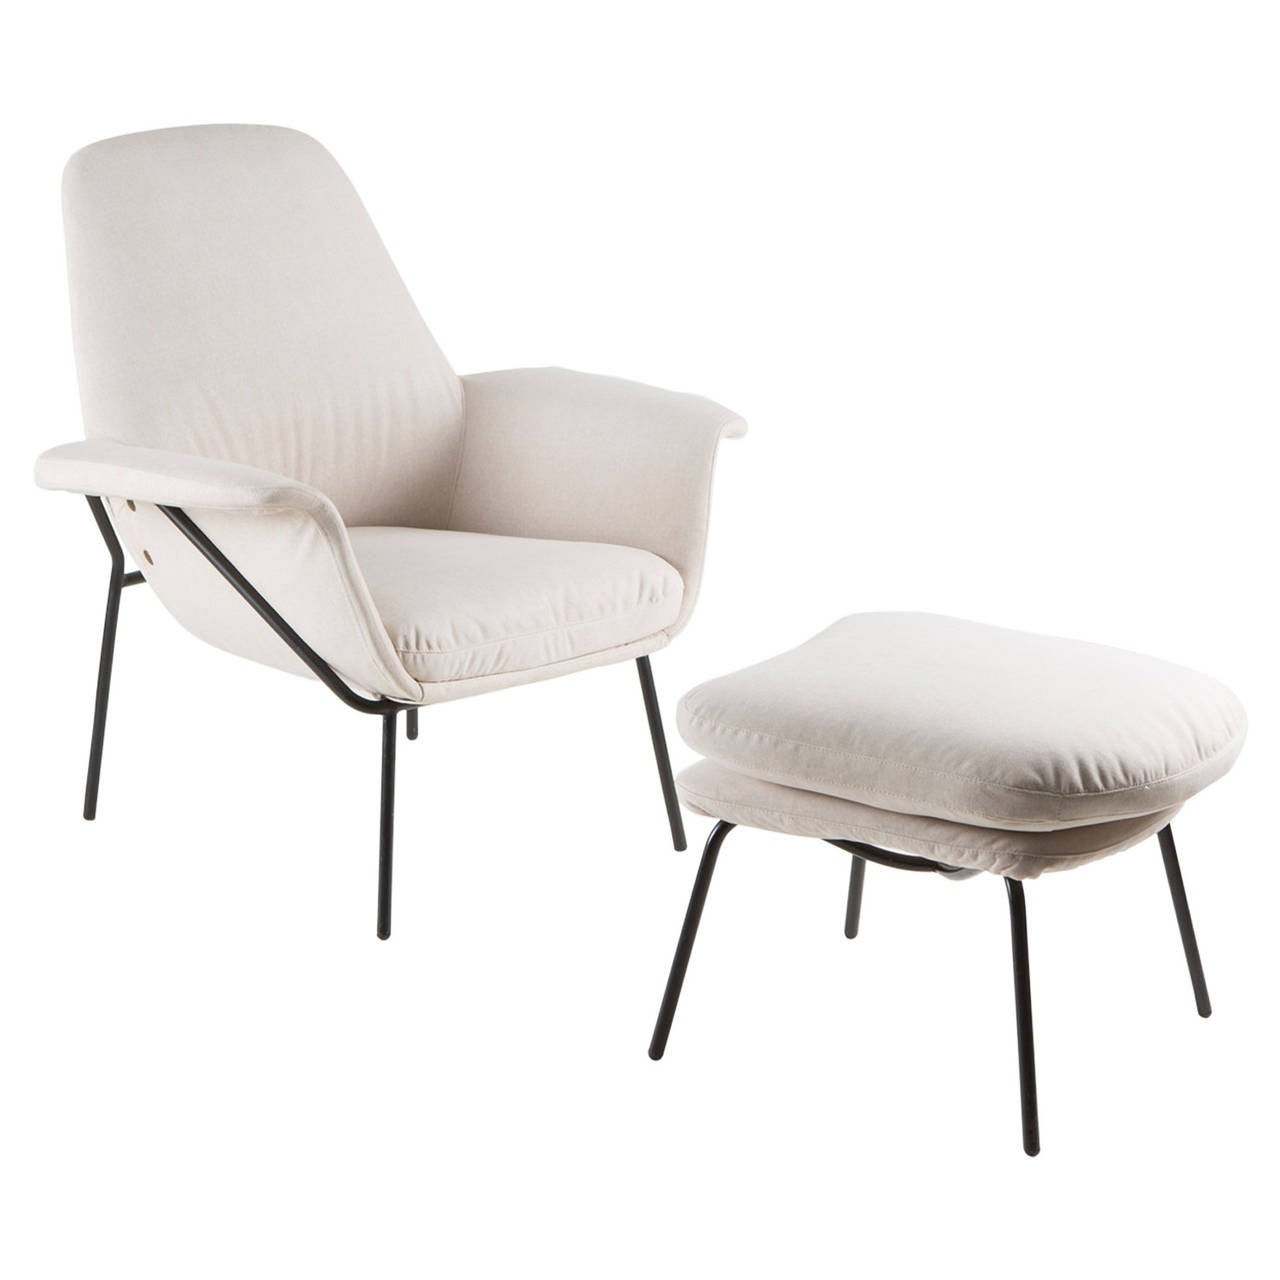 """Lucania"" Armchair with Ottoman by Giancarlo De Carlo for Arflex For Sale"